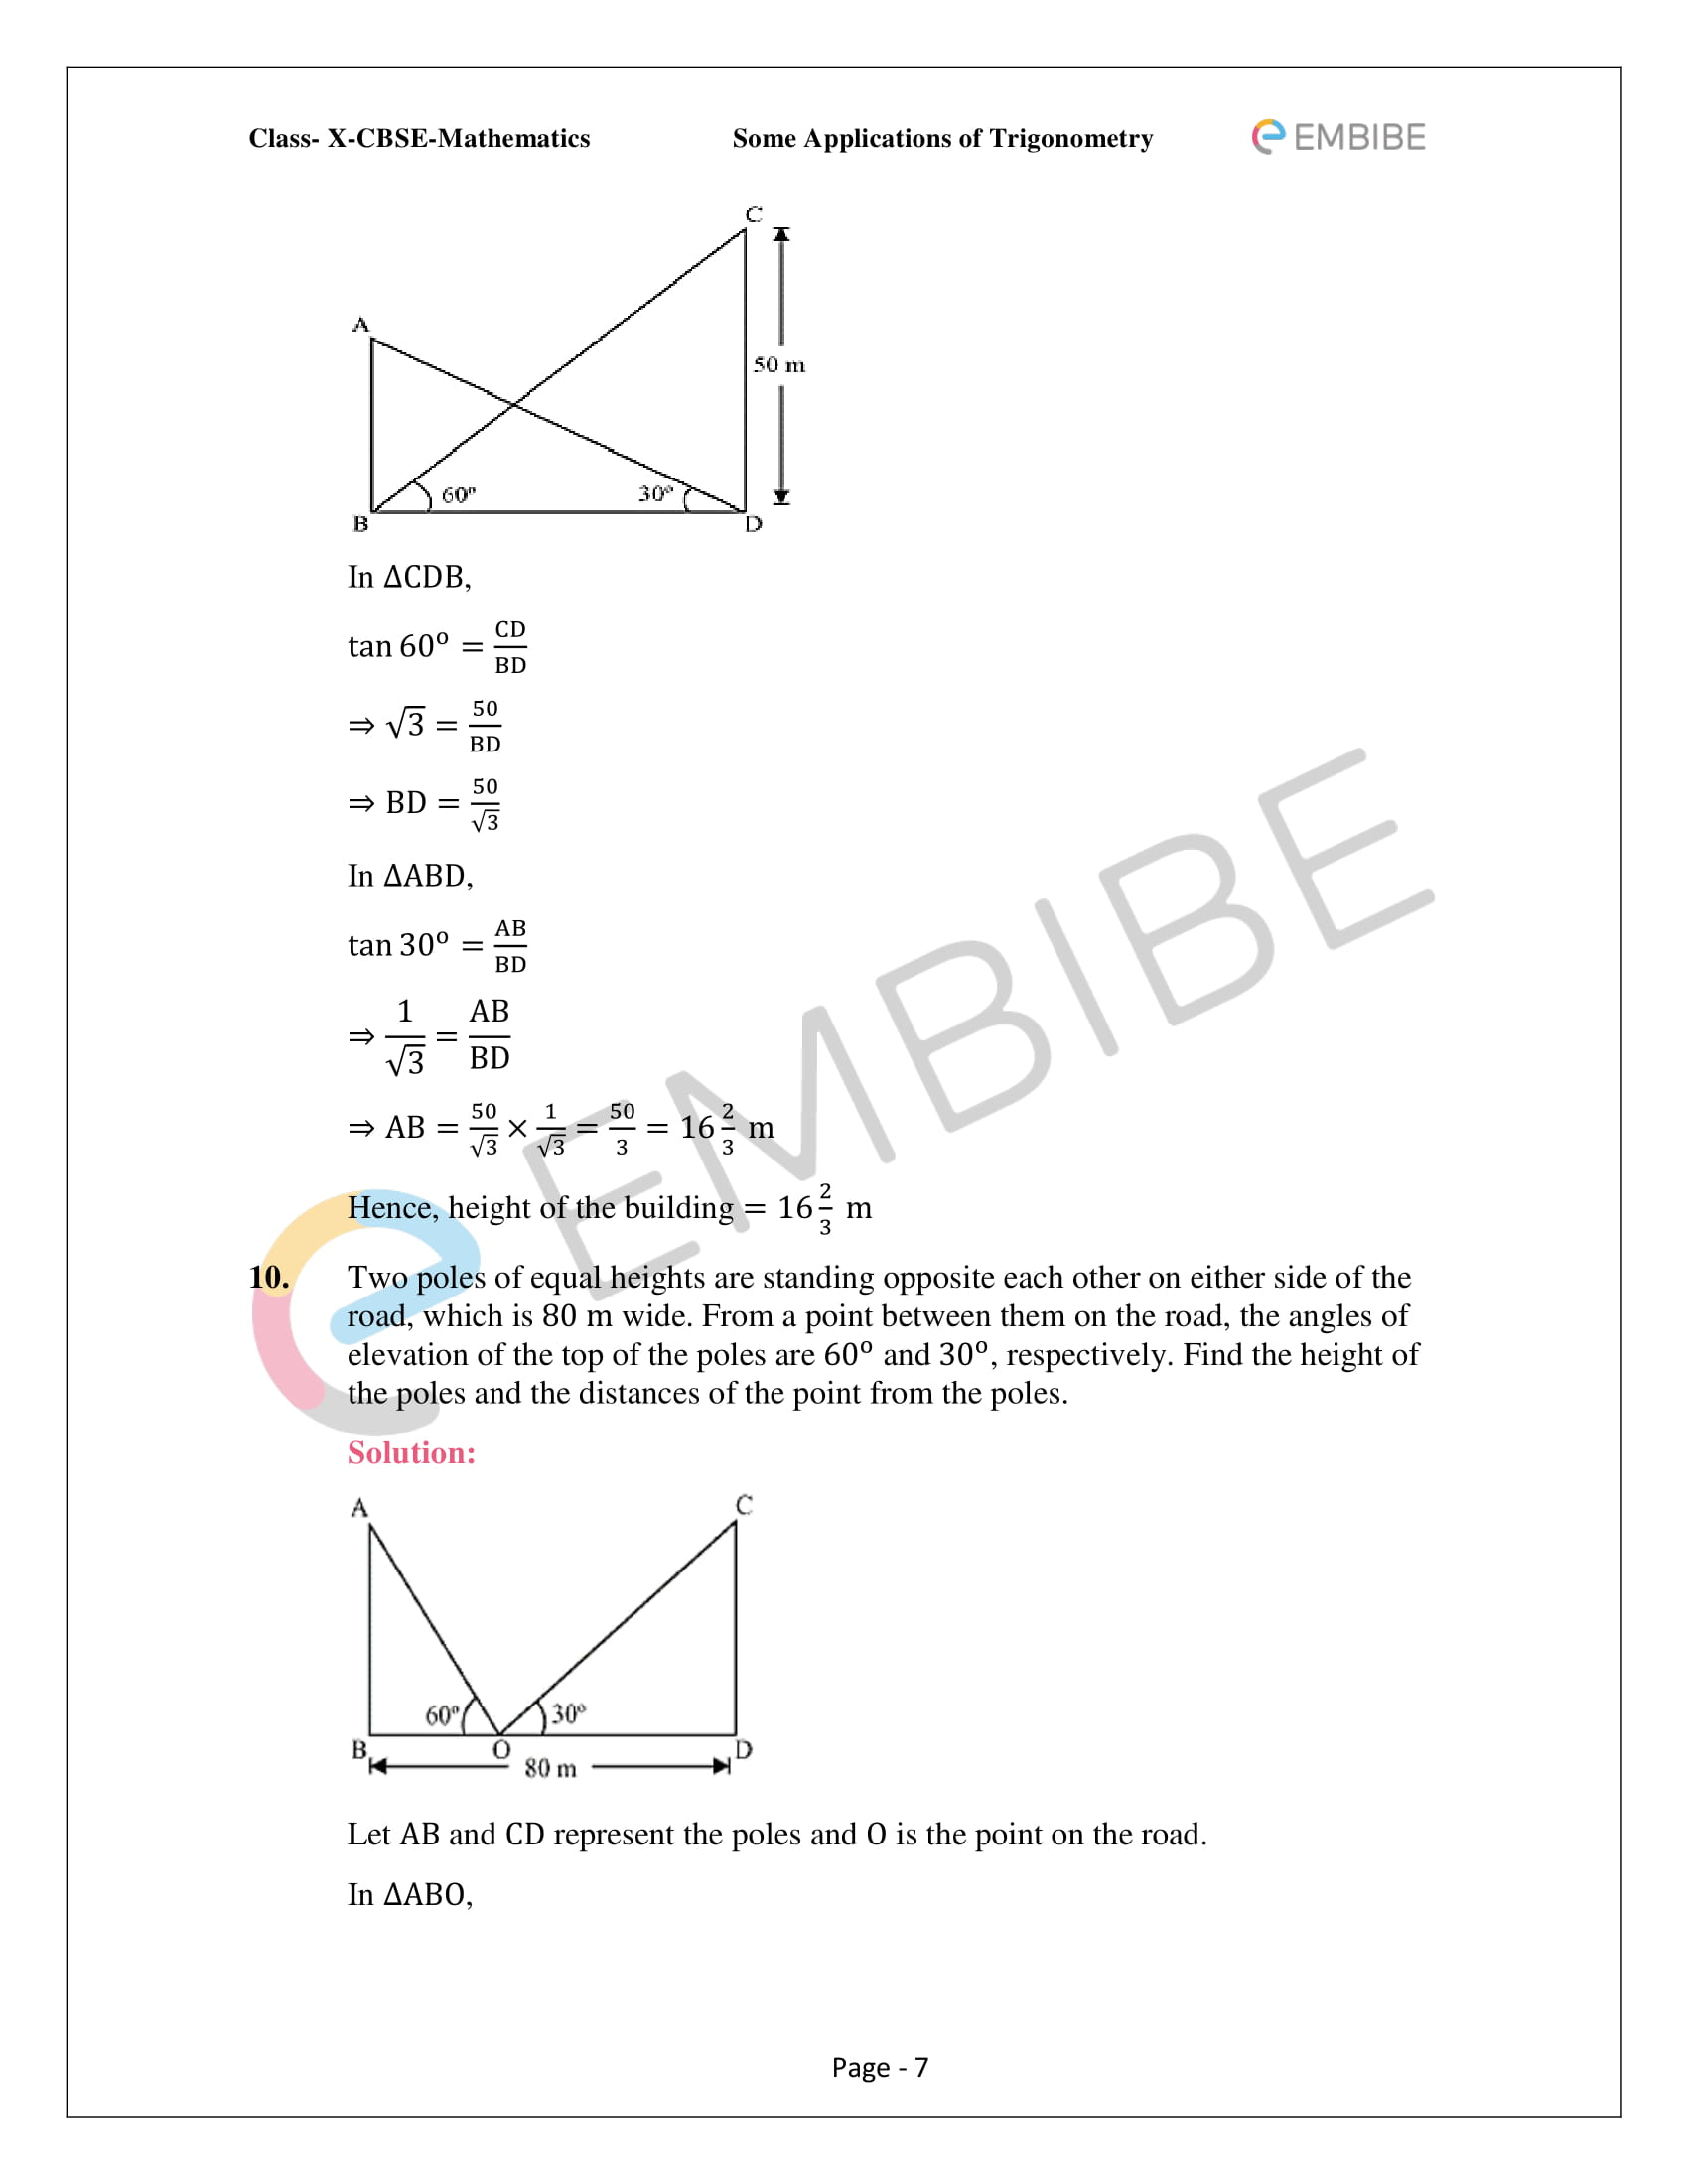 CBSE NCERT Solutions For Class 10 Maths Chapter 9 –Introduction To Trigonometry - 7